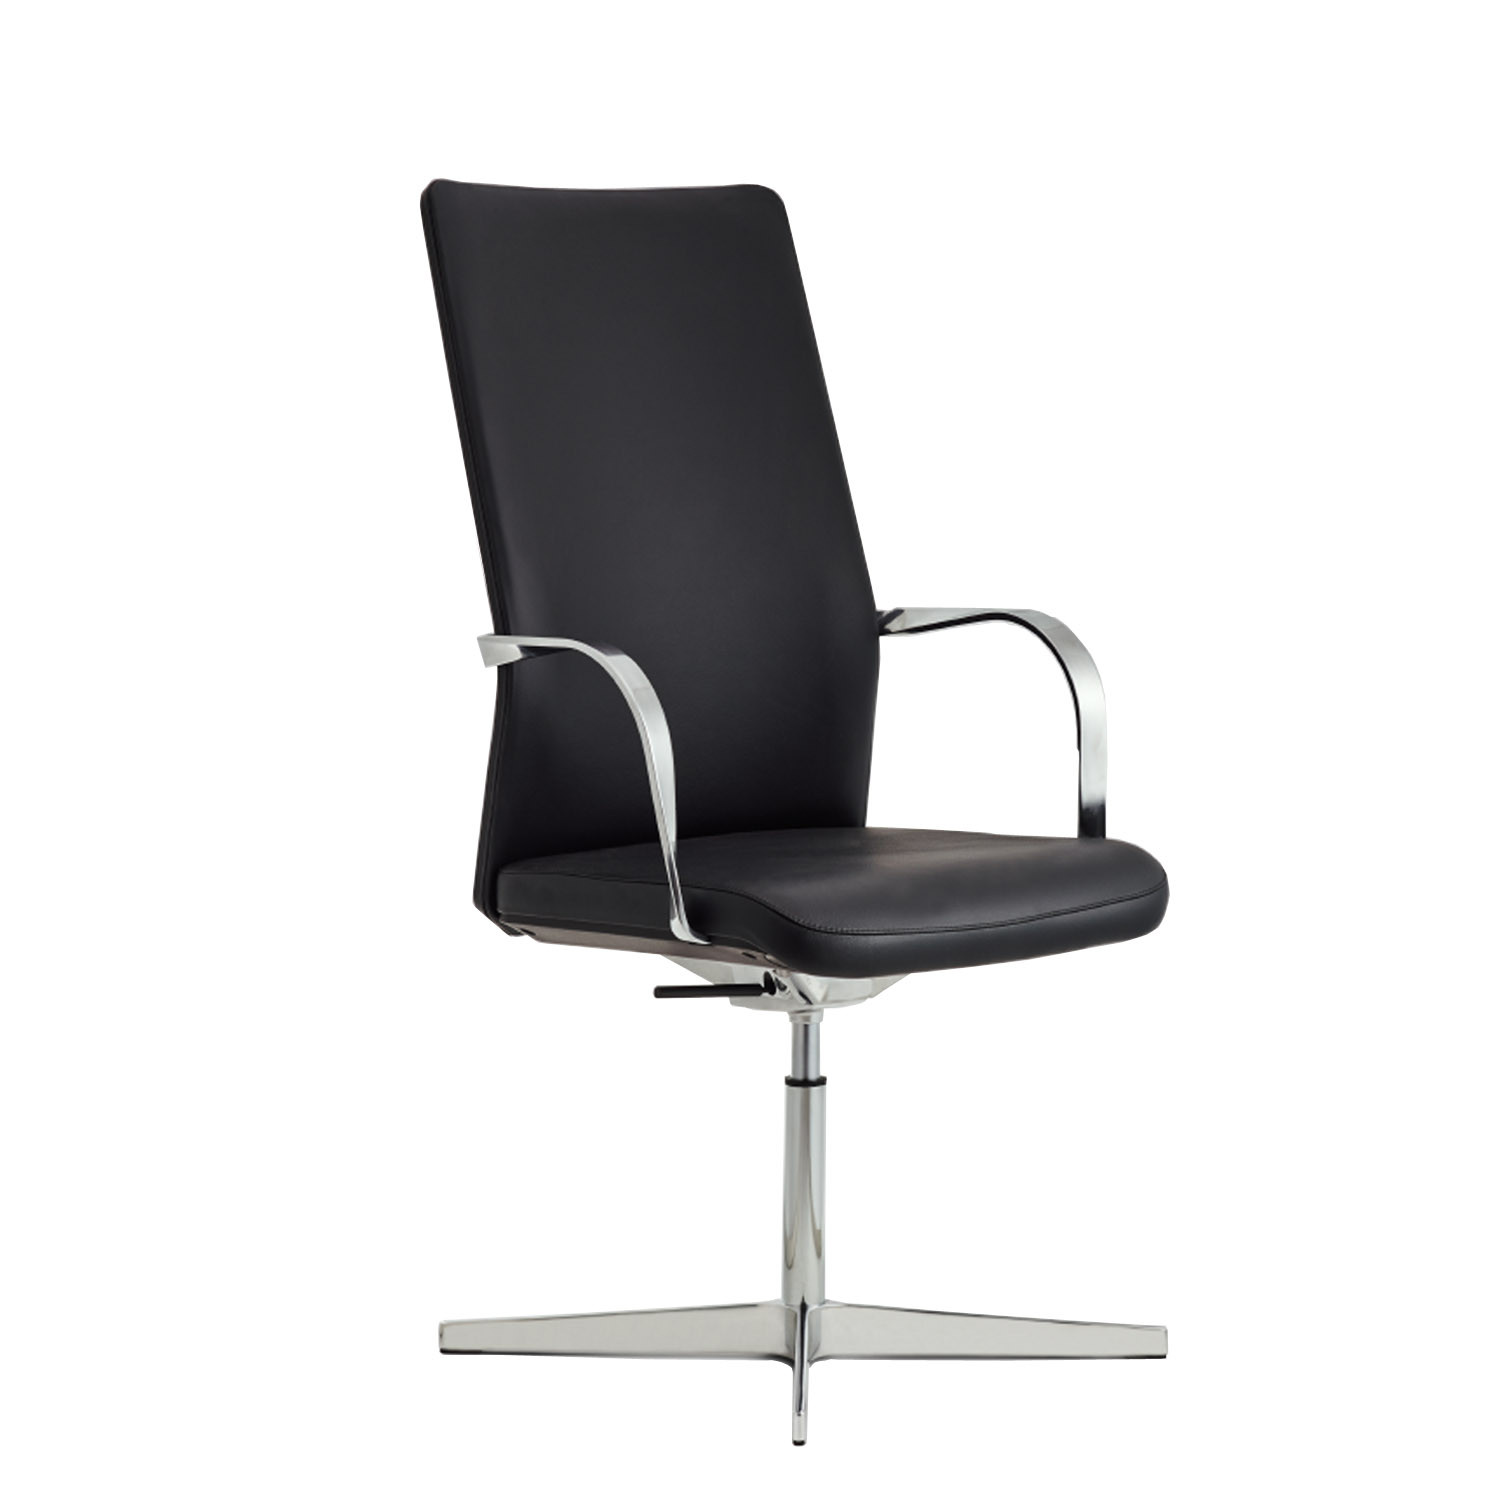 MN1 High Back Meeting Chair